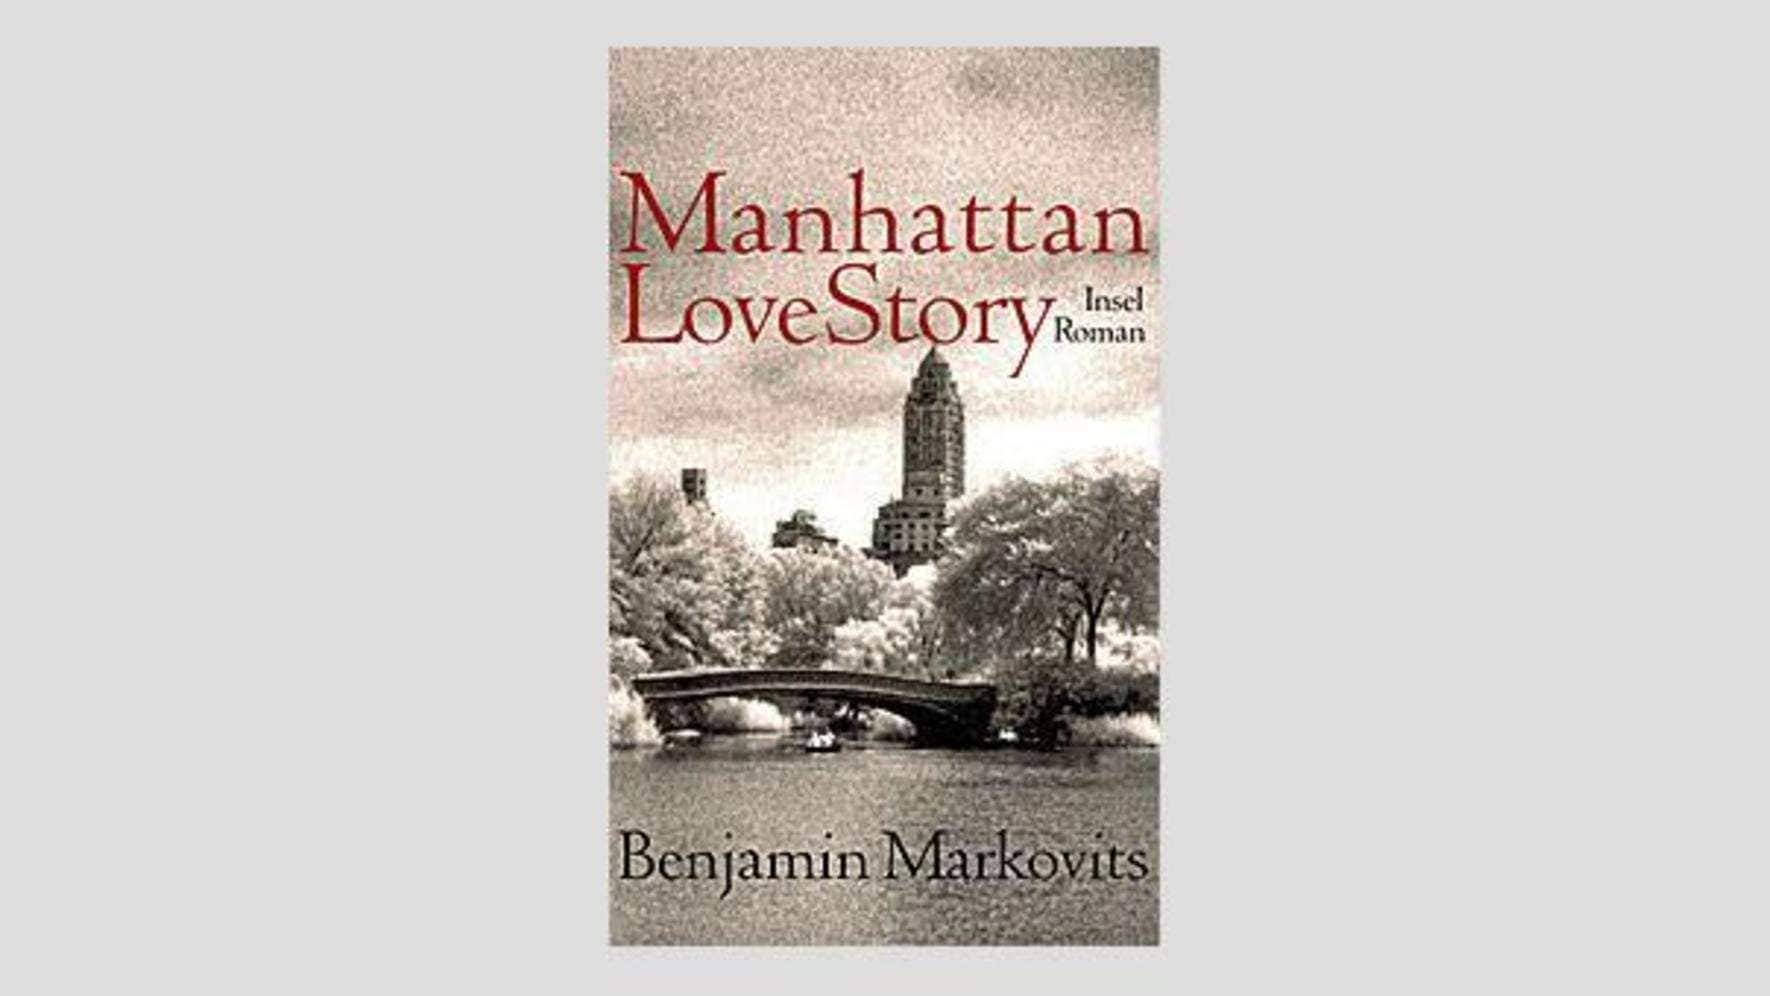 Manhattan Lovestory